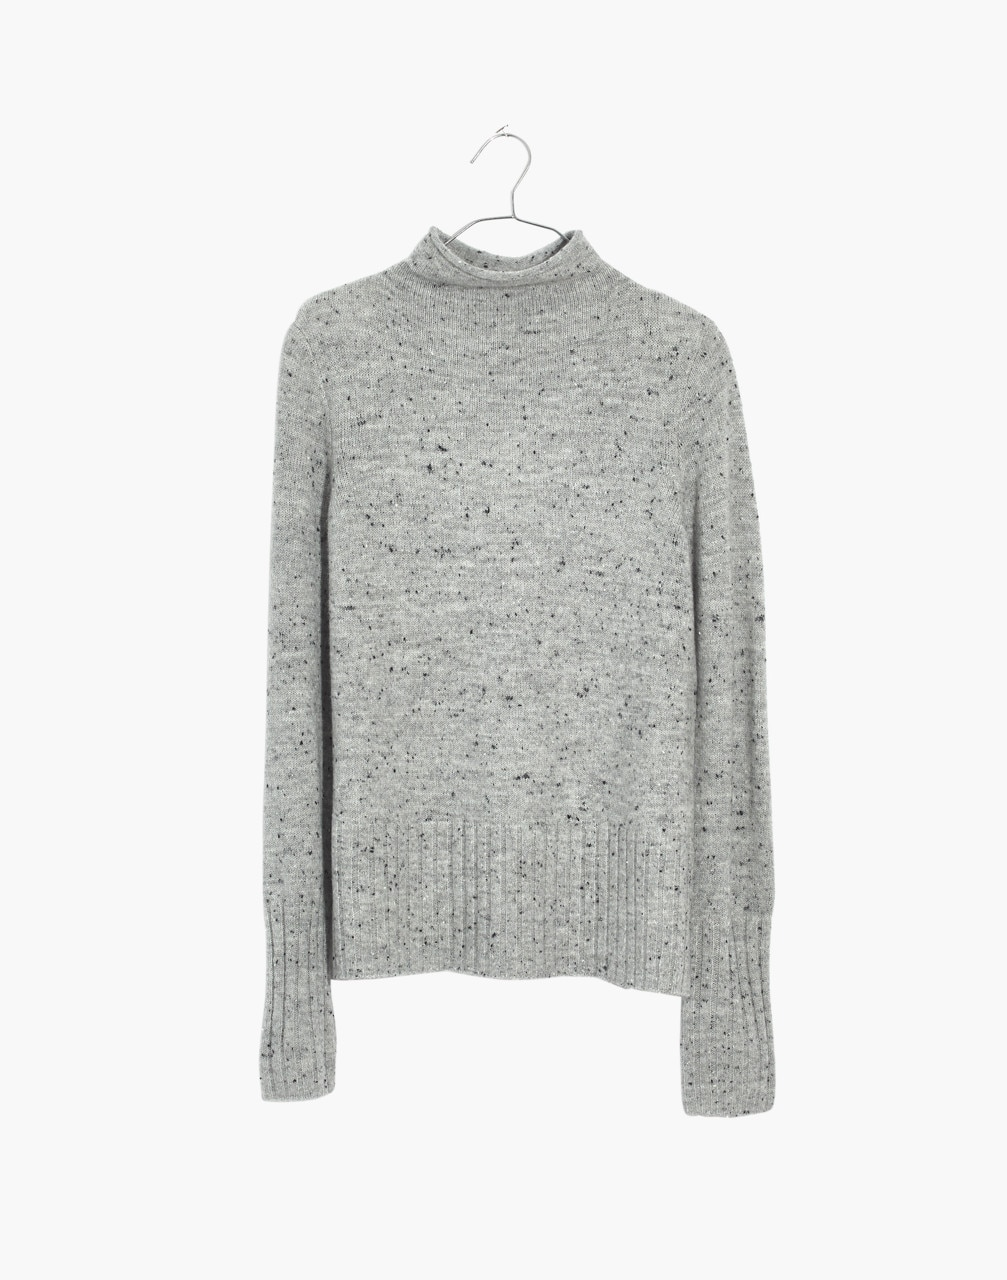 My favorite sweater right now. Goes with everything and is so soft! From  MADEWELL